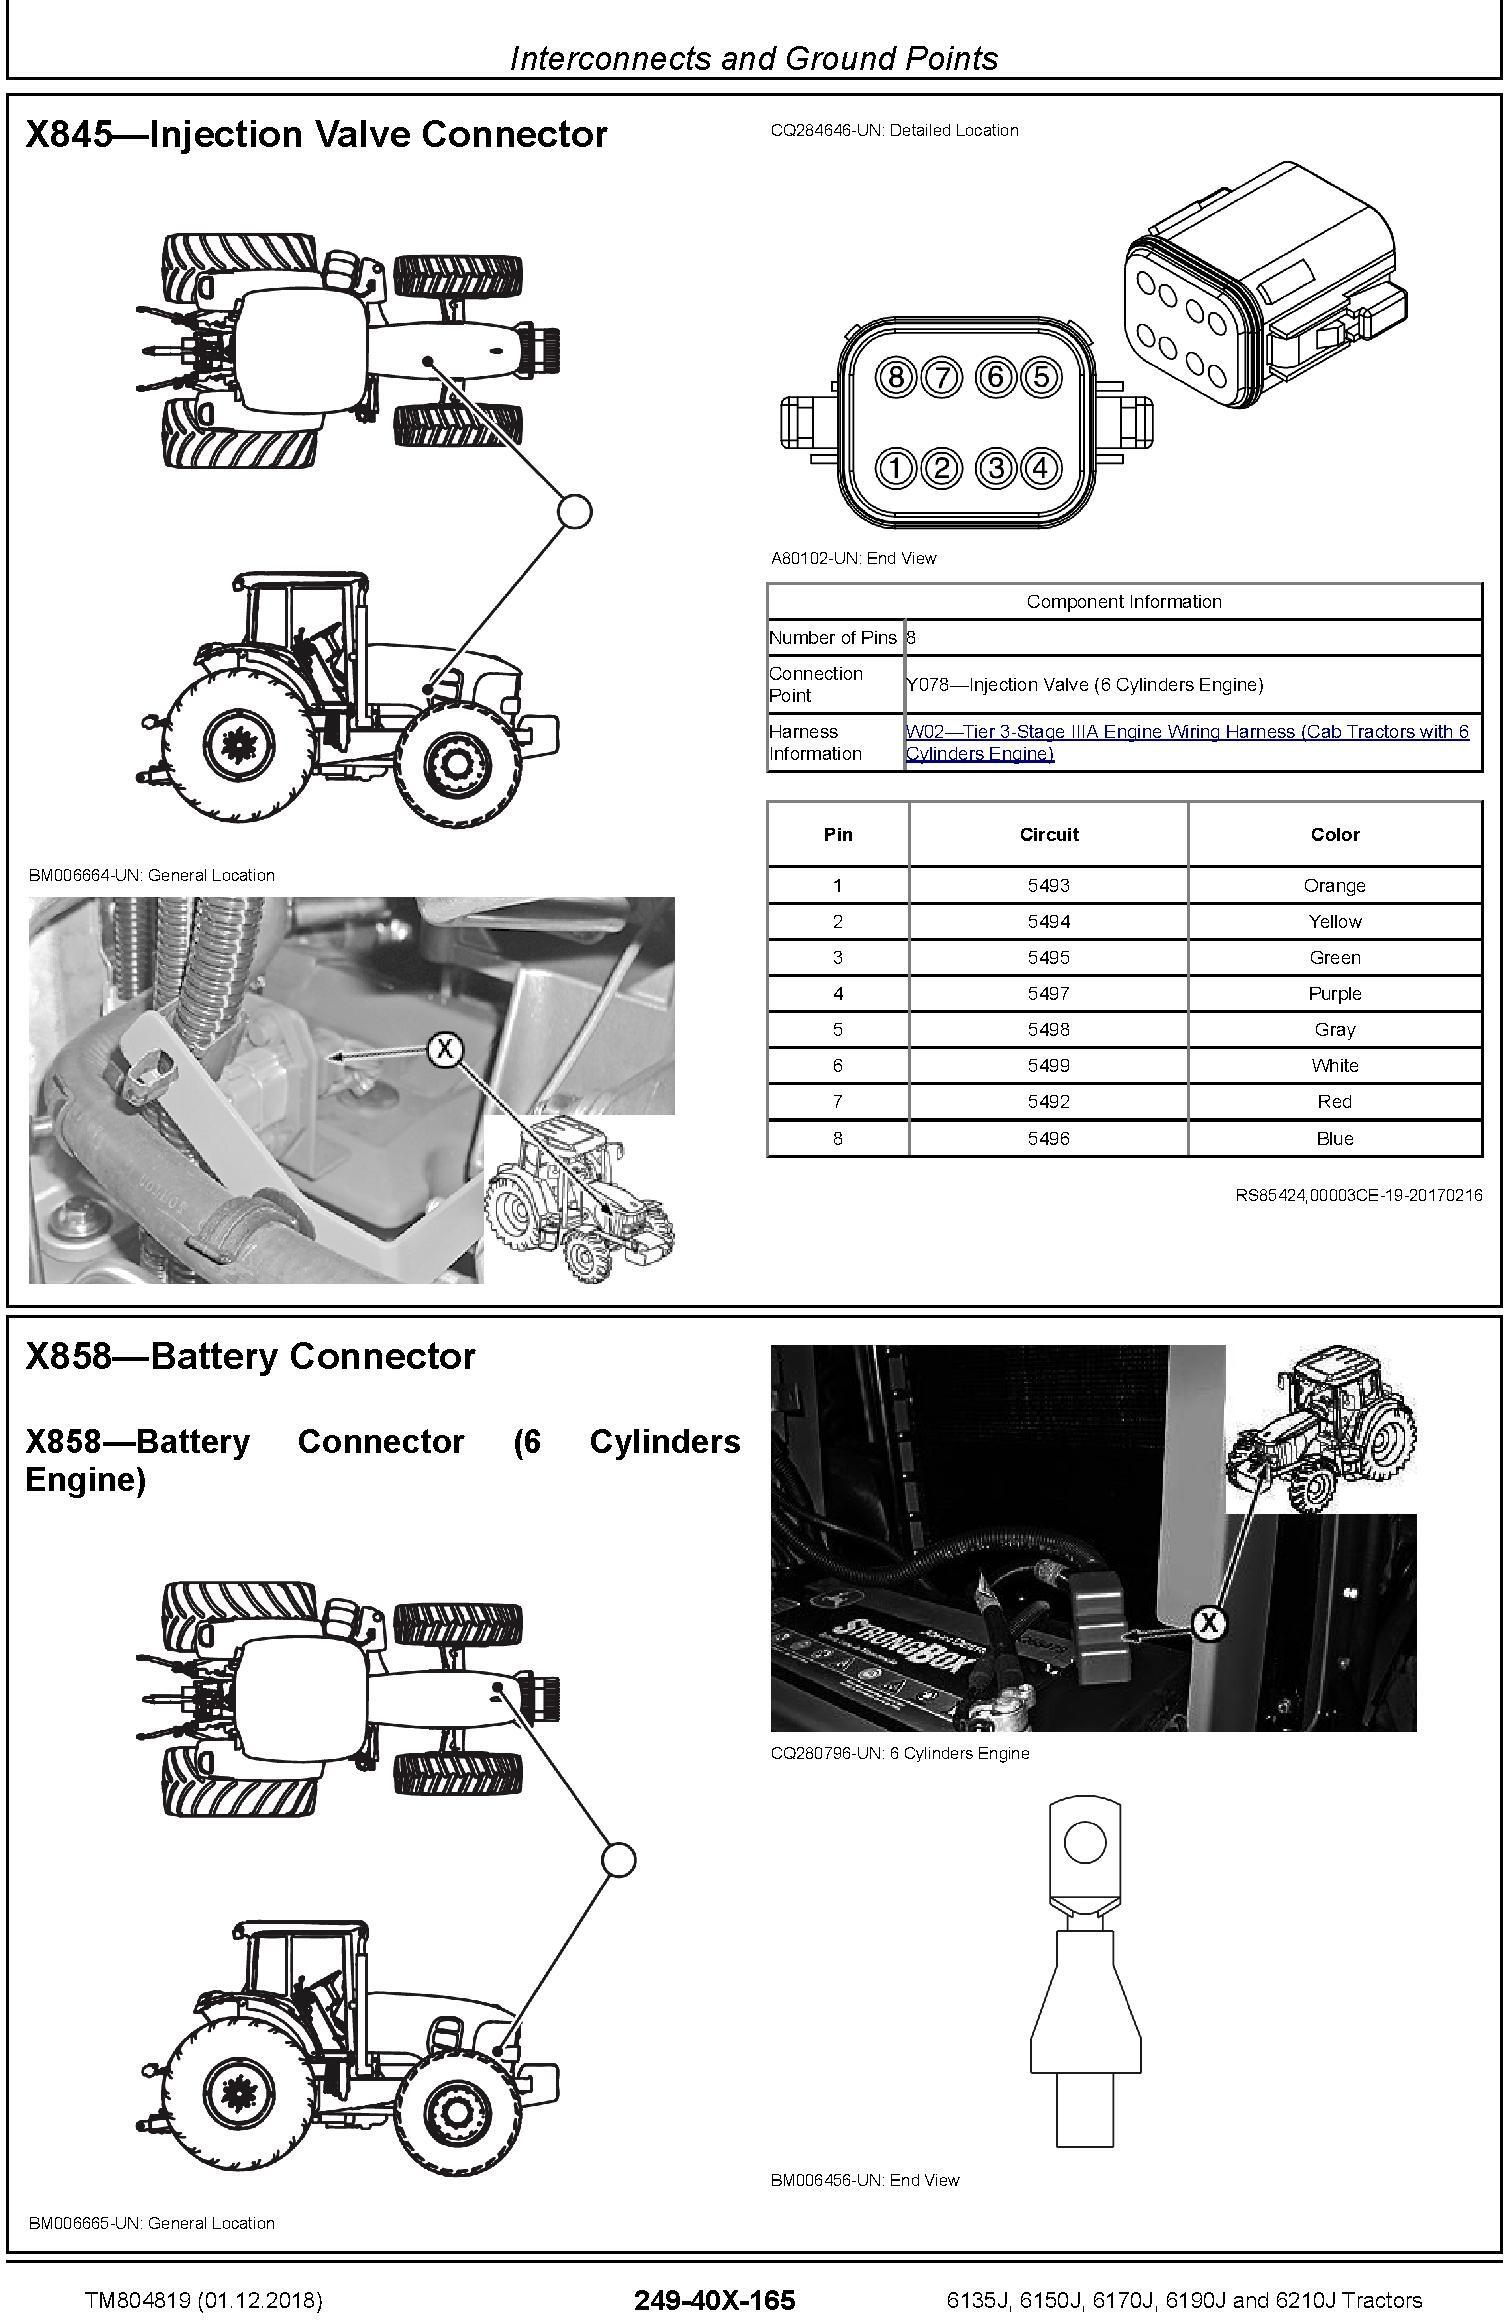 John Deere 6135J, 6150J, 6170J, 6190J, 6210J Tractors Diagnostic Technical Service Manual (TM804819) - 1